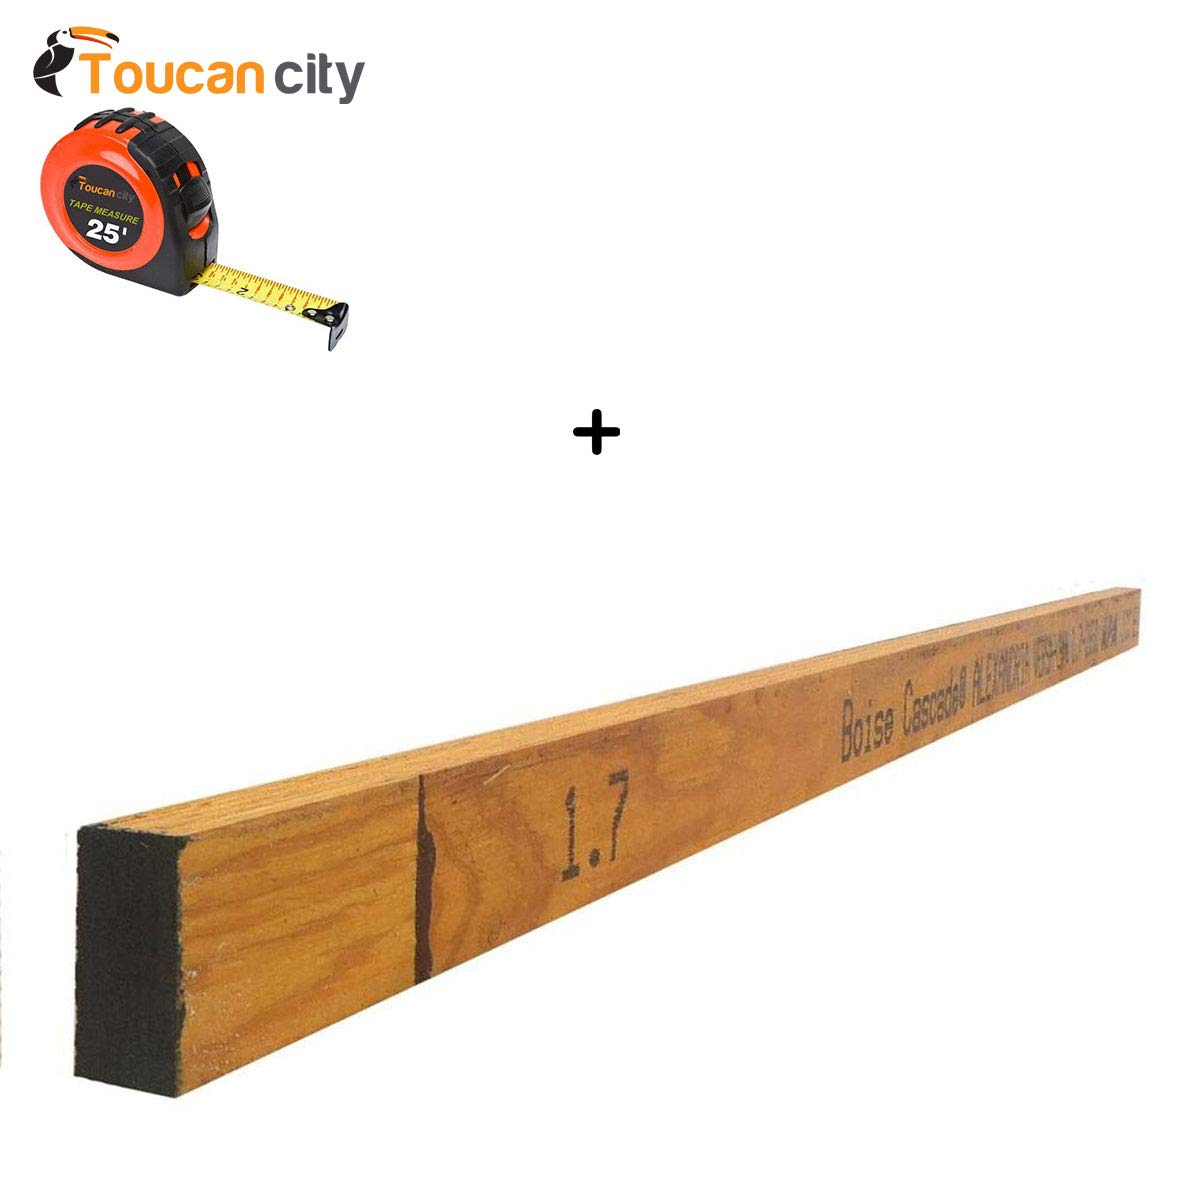 Toucan City Tape Measure and Boise Cascade 2 in. x 4 in. x 8 ft. Versa-Stud LVL SP 2650 1.7 (3-Piece per Box) 2112003